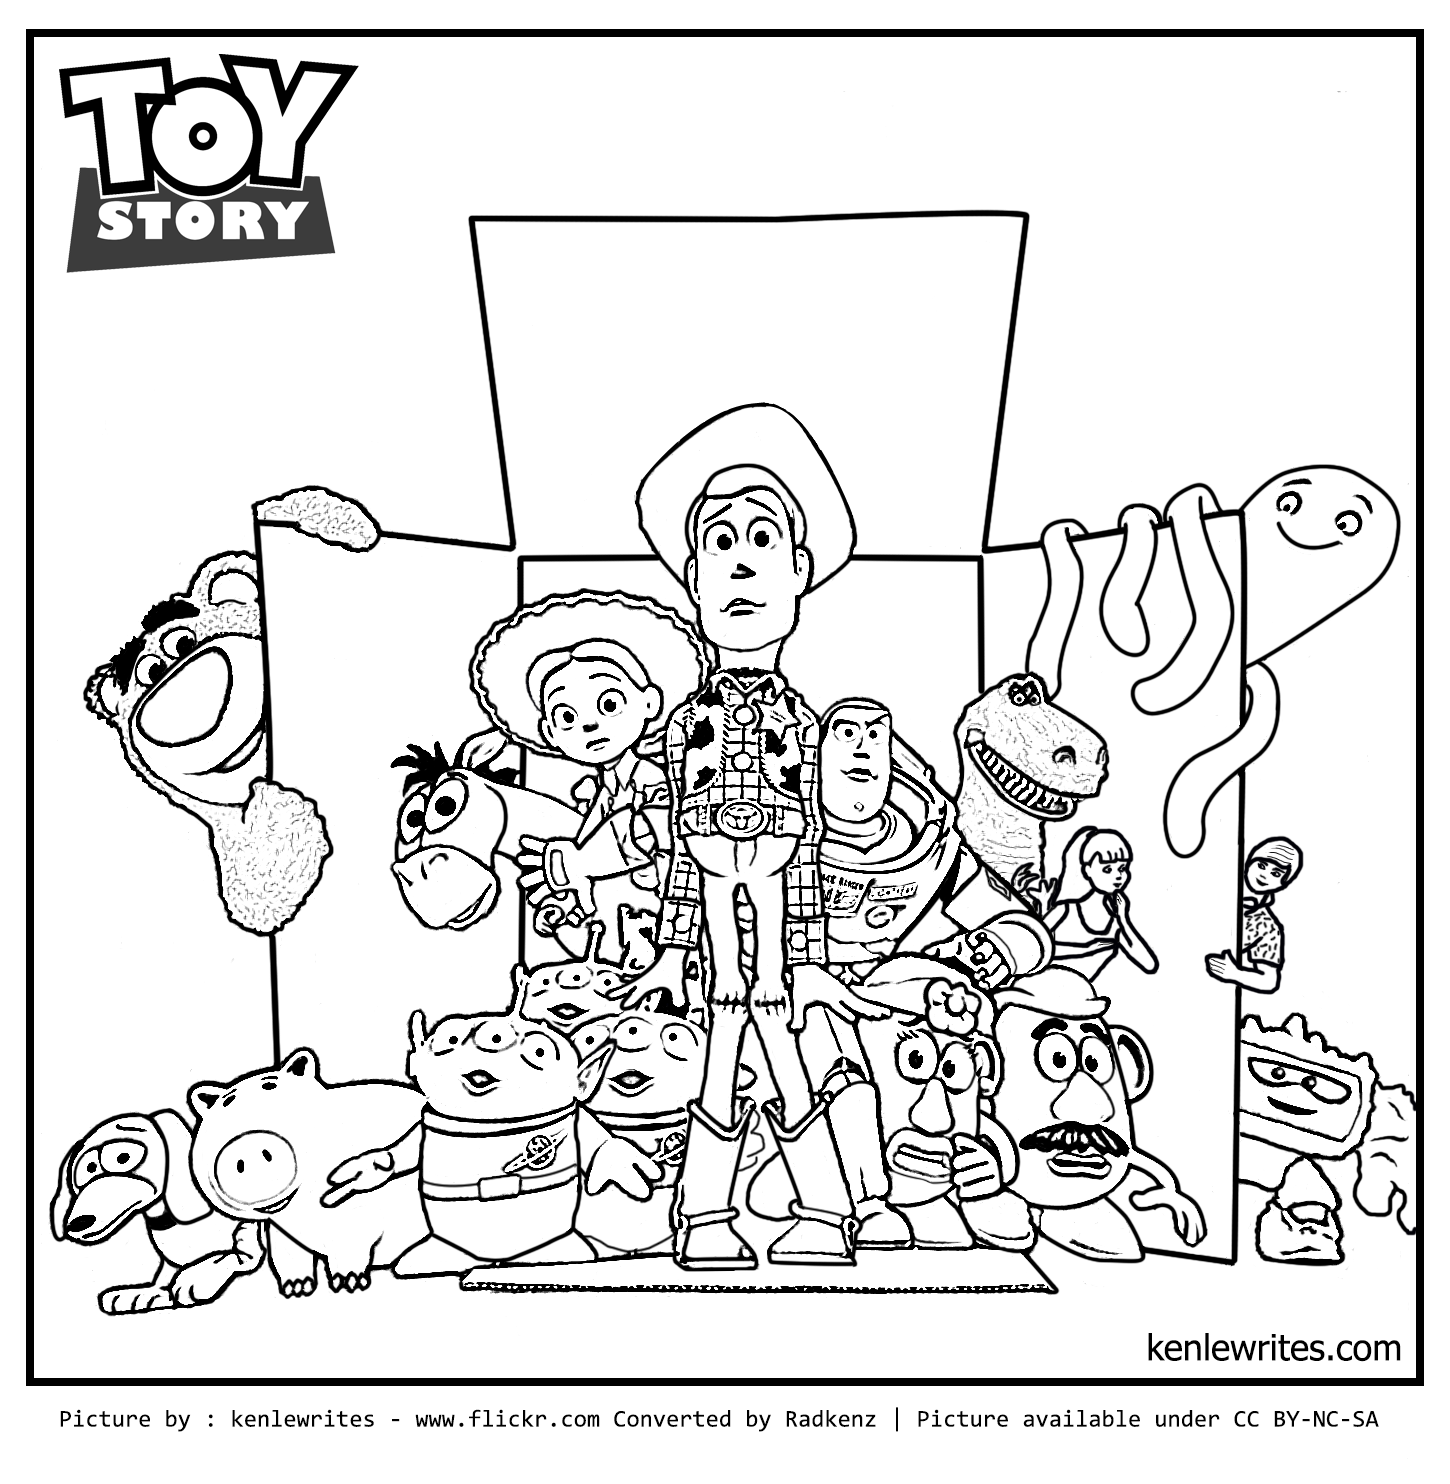 printable toy story 3 coloring pages toy story coloring pages google søgning coloring pages pages toy coloring printable 3 story